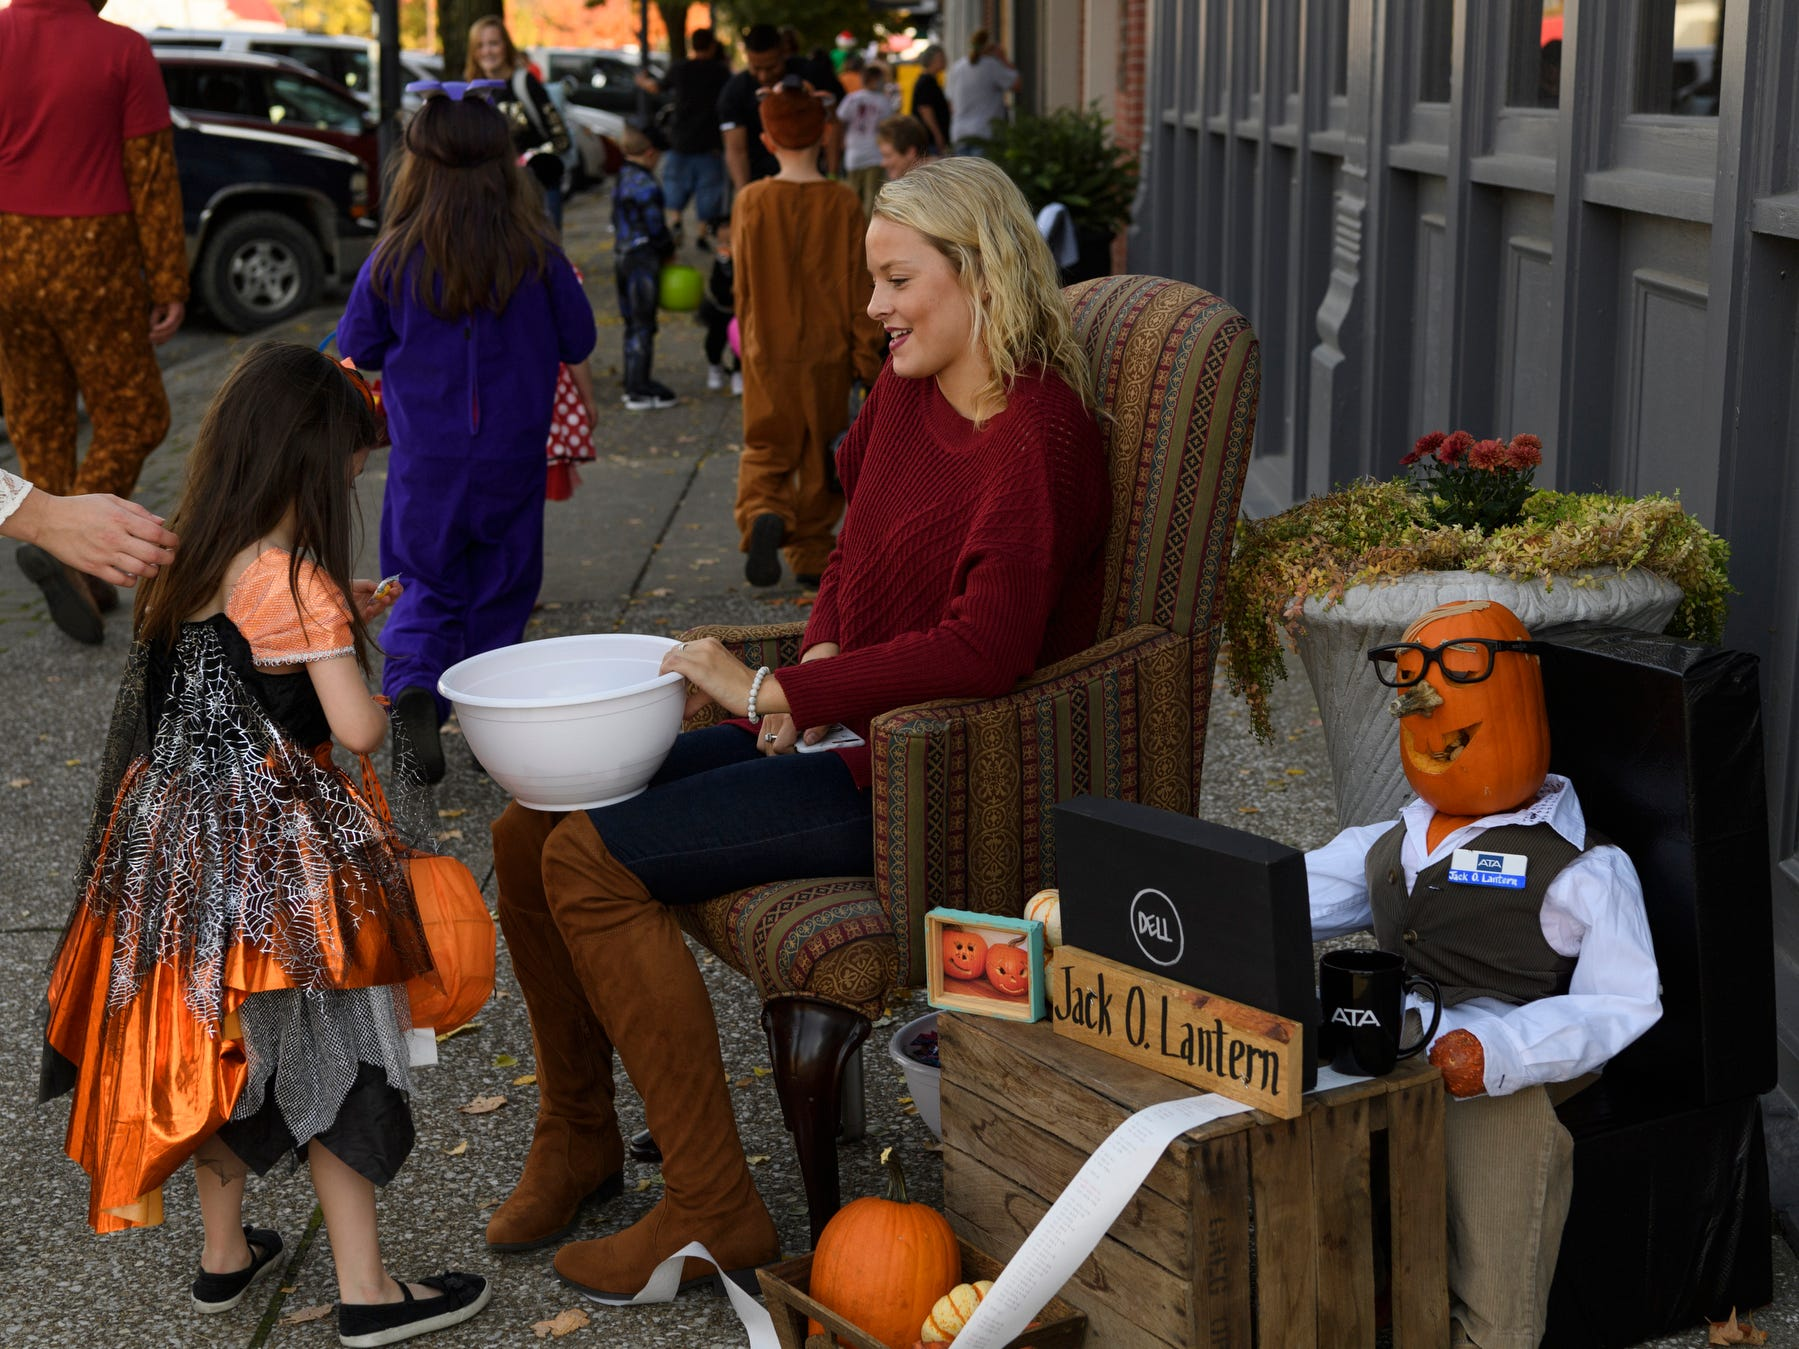 Carlee Carfton of ATA Certified Public Accountants hands out candy to trick-or-treaters along First Street in downtown Henderson, Ky., Tuesday, Oct. 30, 2018.